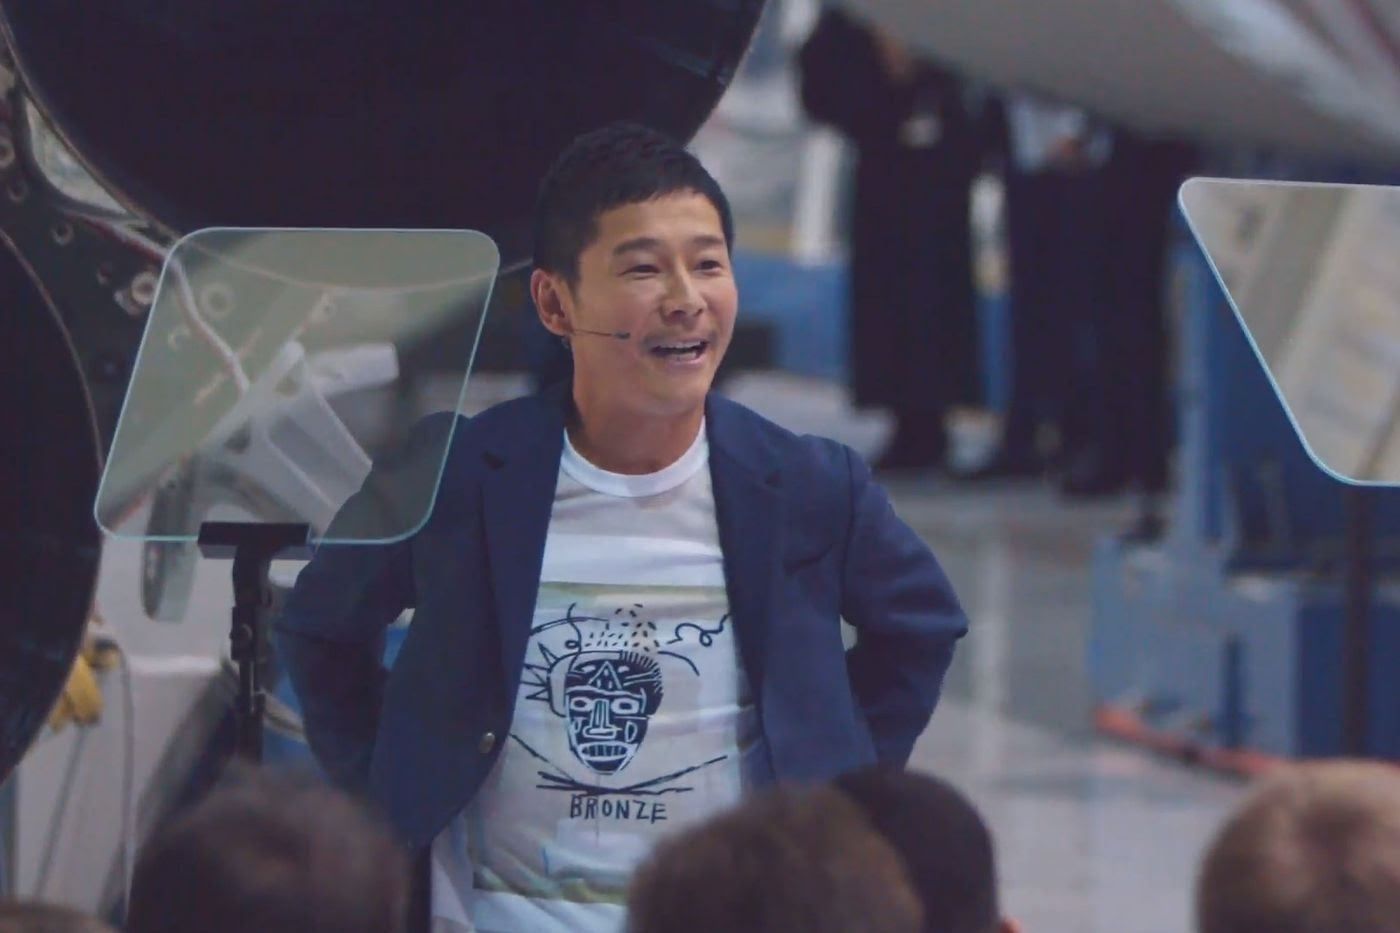 Japanese Billionaire Is Giving His Twitter Followers $9 Million To Know If The Money Makes Them Happier